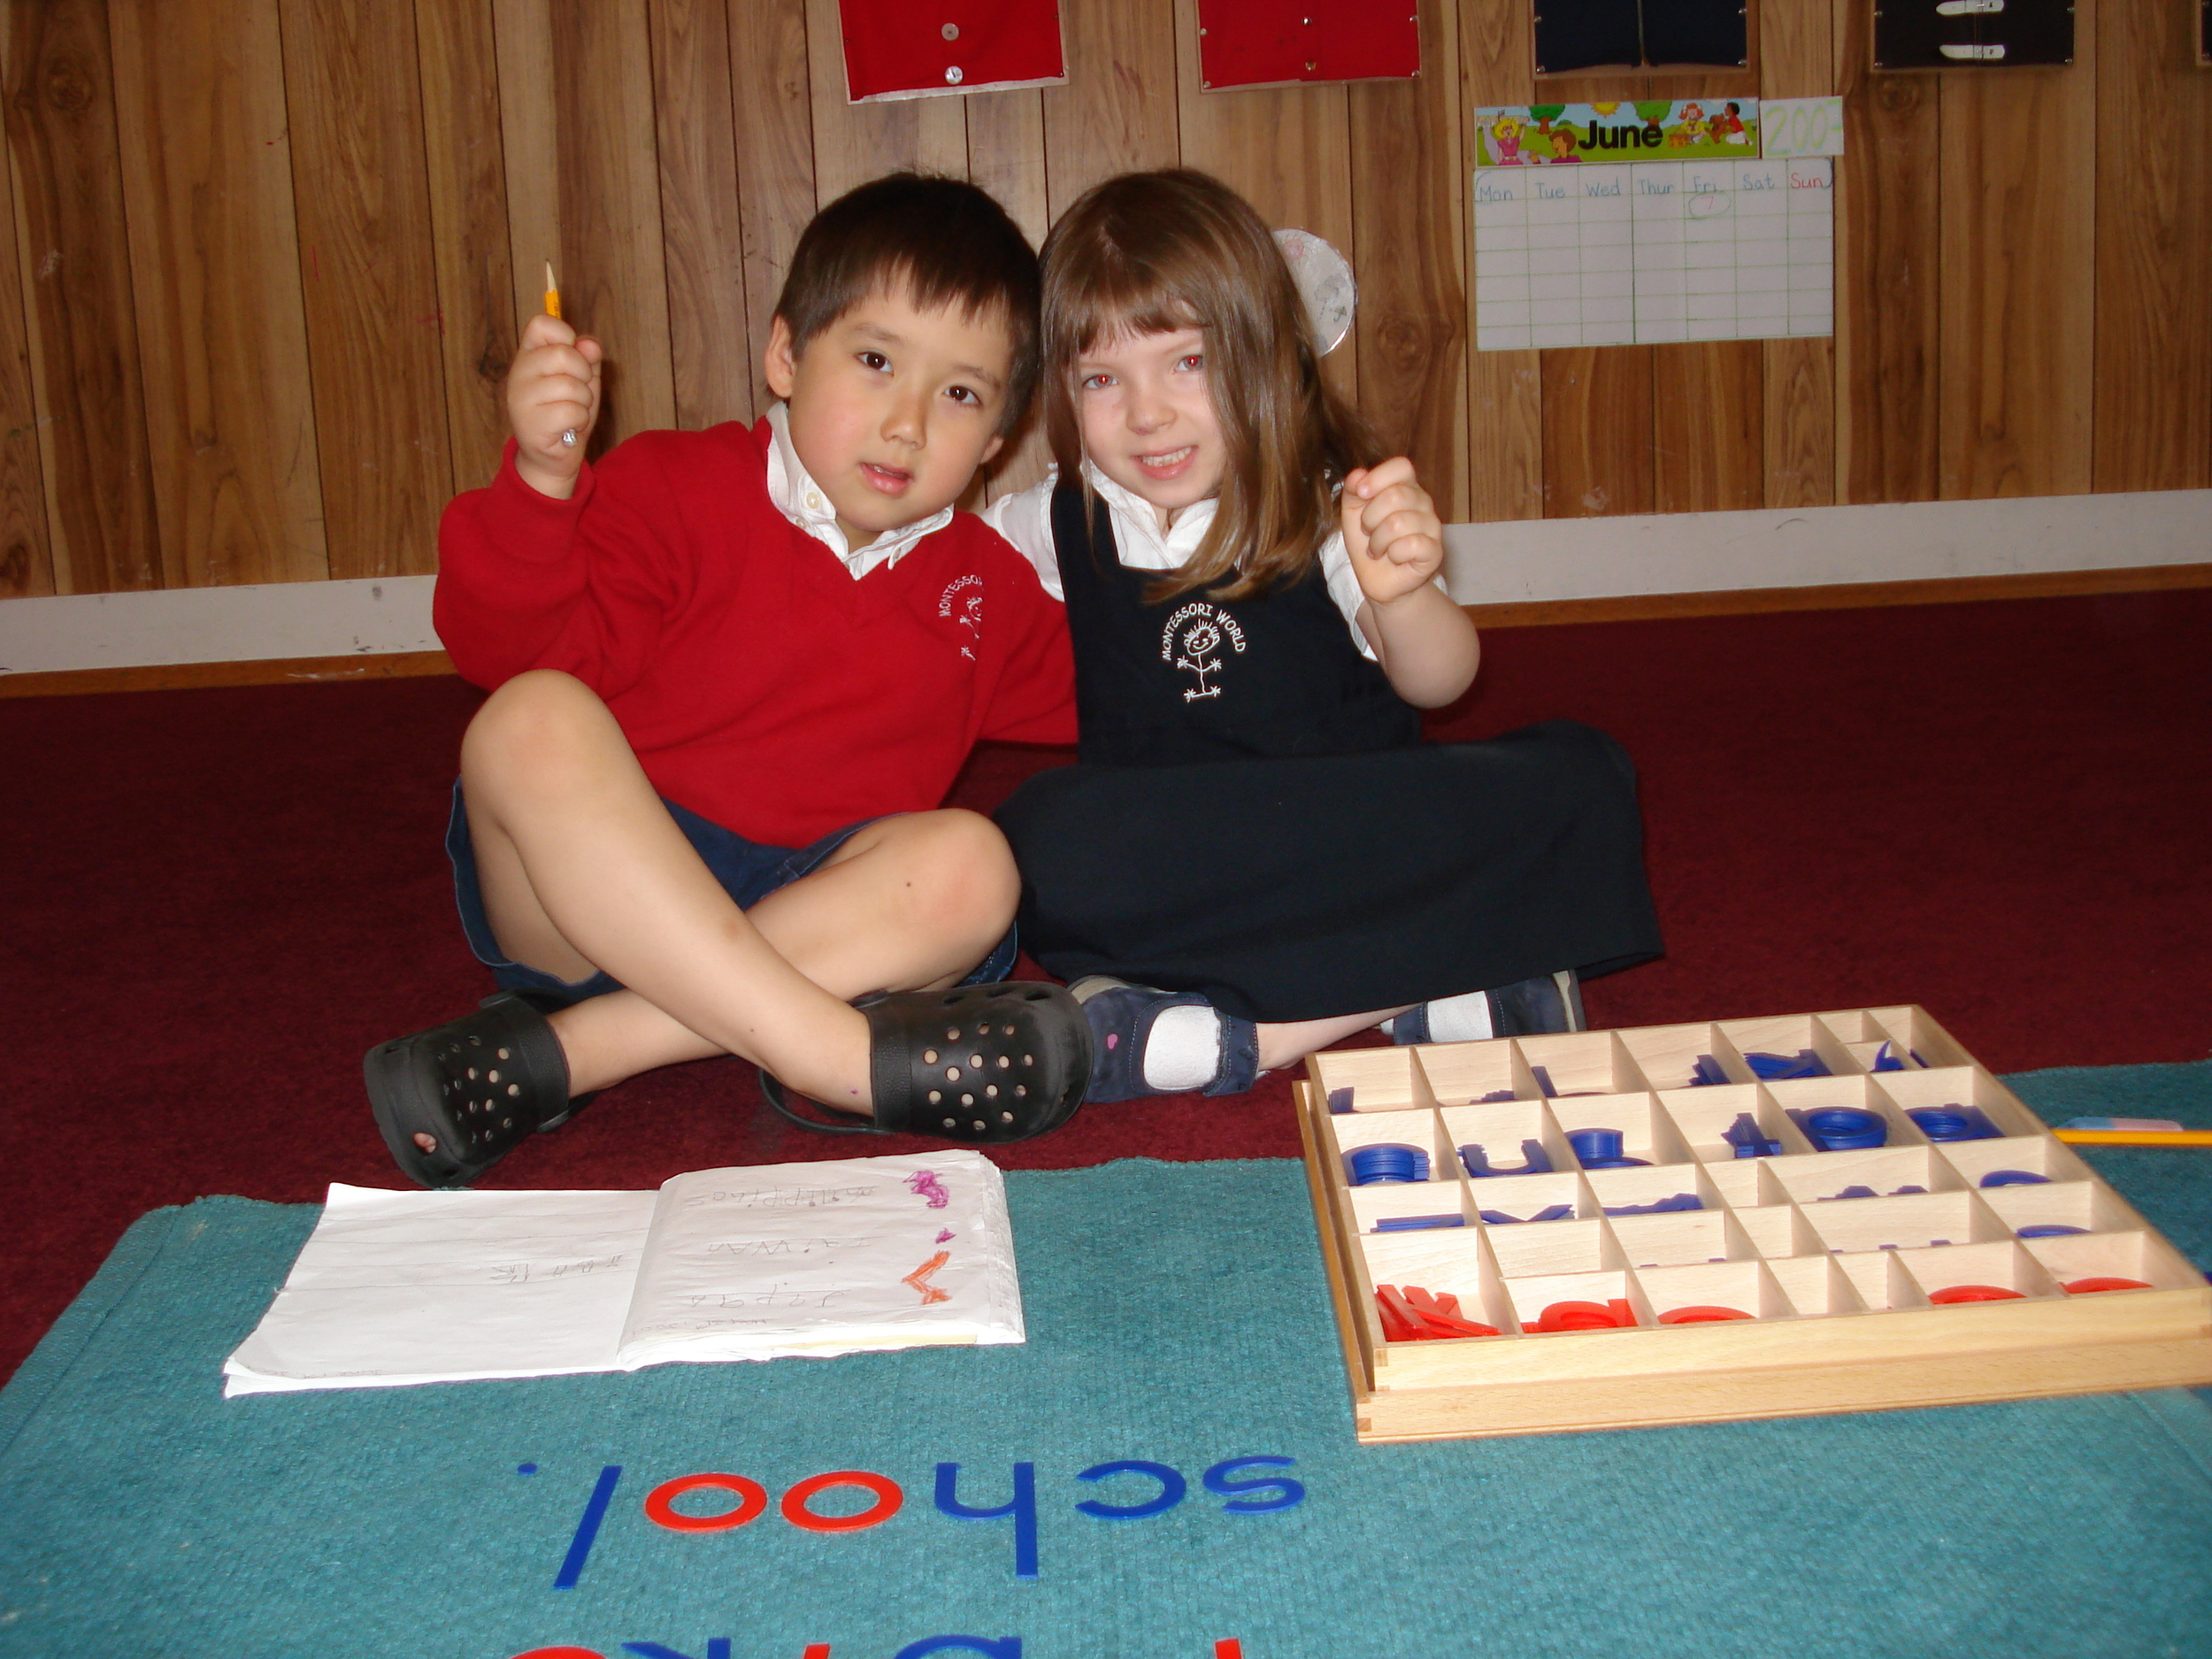 Children learning to spell - Language